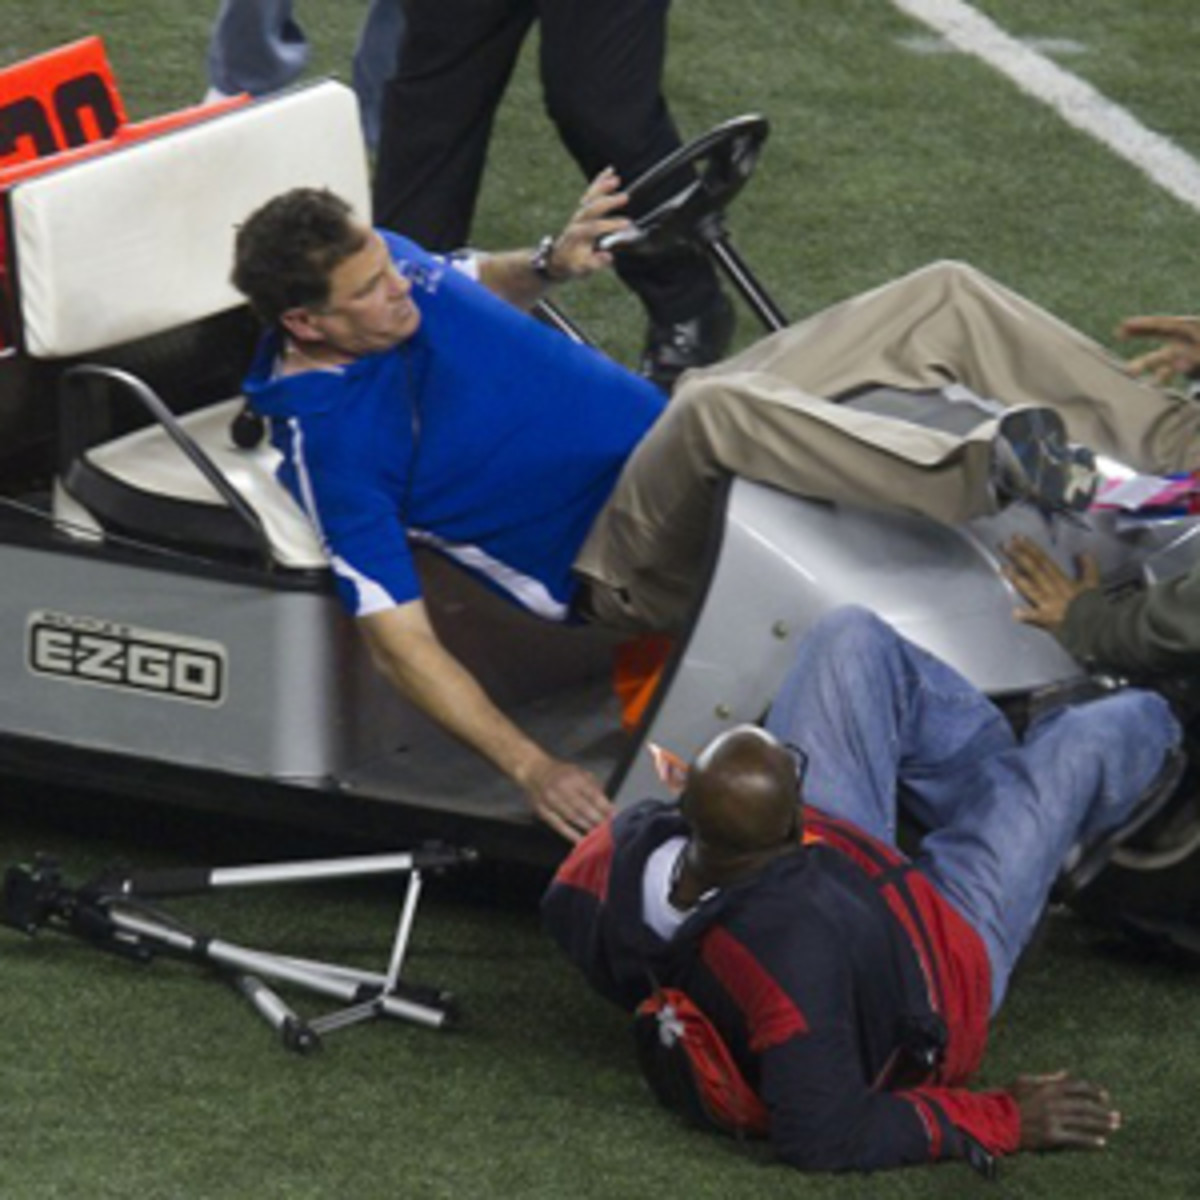 Spring Dekaney football coach Willie Amendola is struck by a golf cart at Cowboys Stadium in 2011. (YouTube)